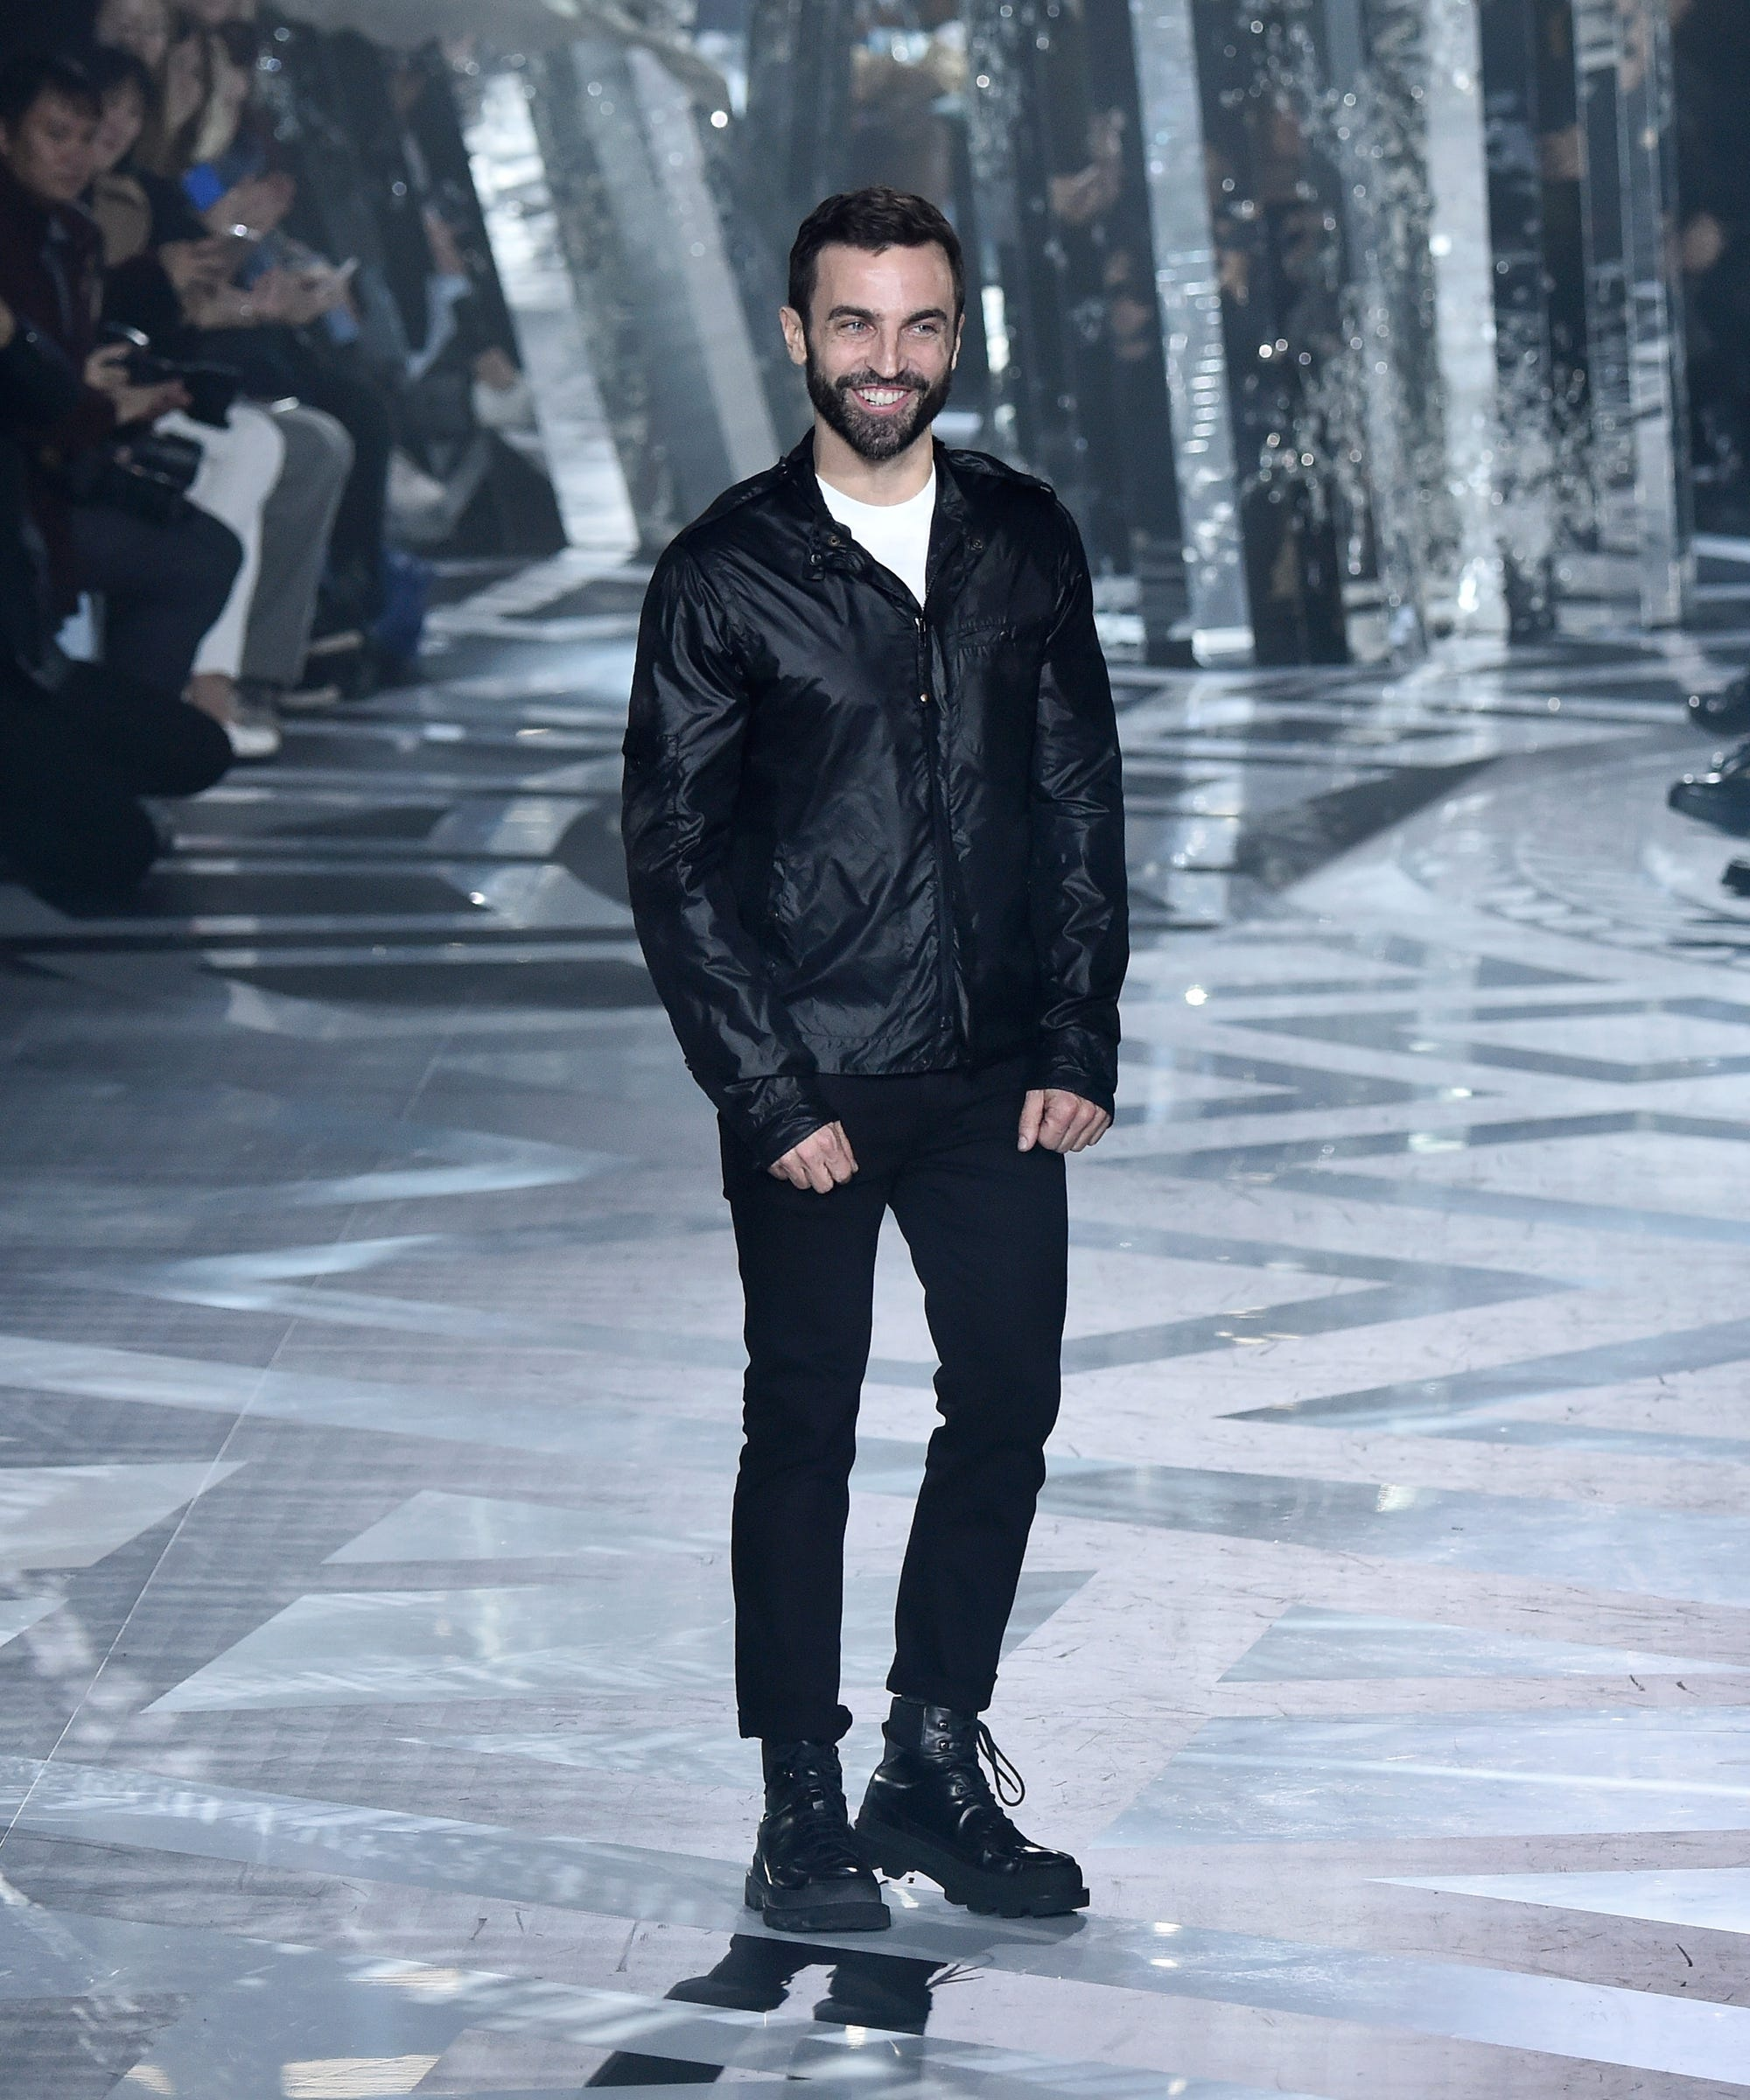 MORE: Report: Nicolas Ghesquiere To Replace Marc Jacobs At LouisVuitton